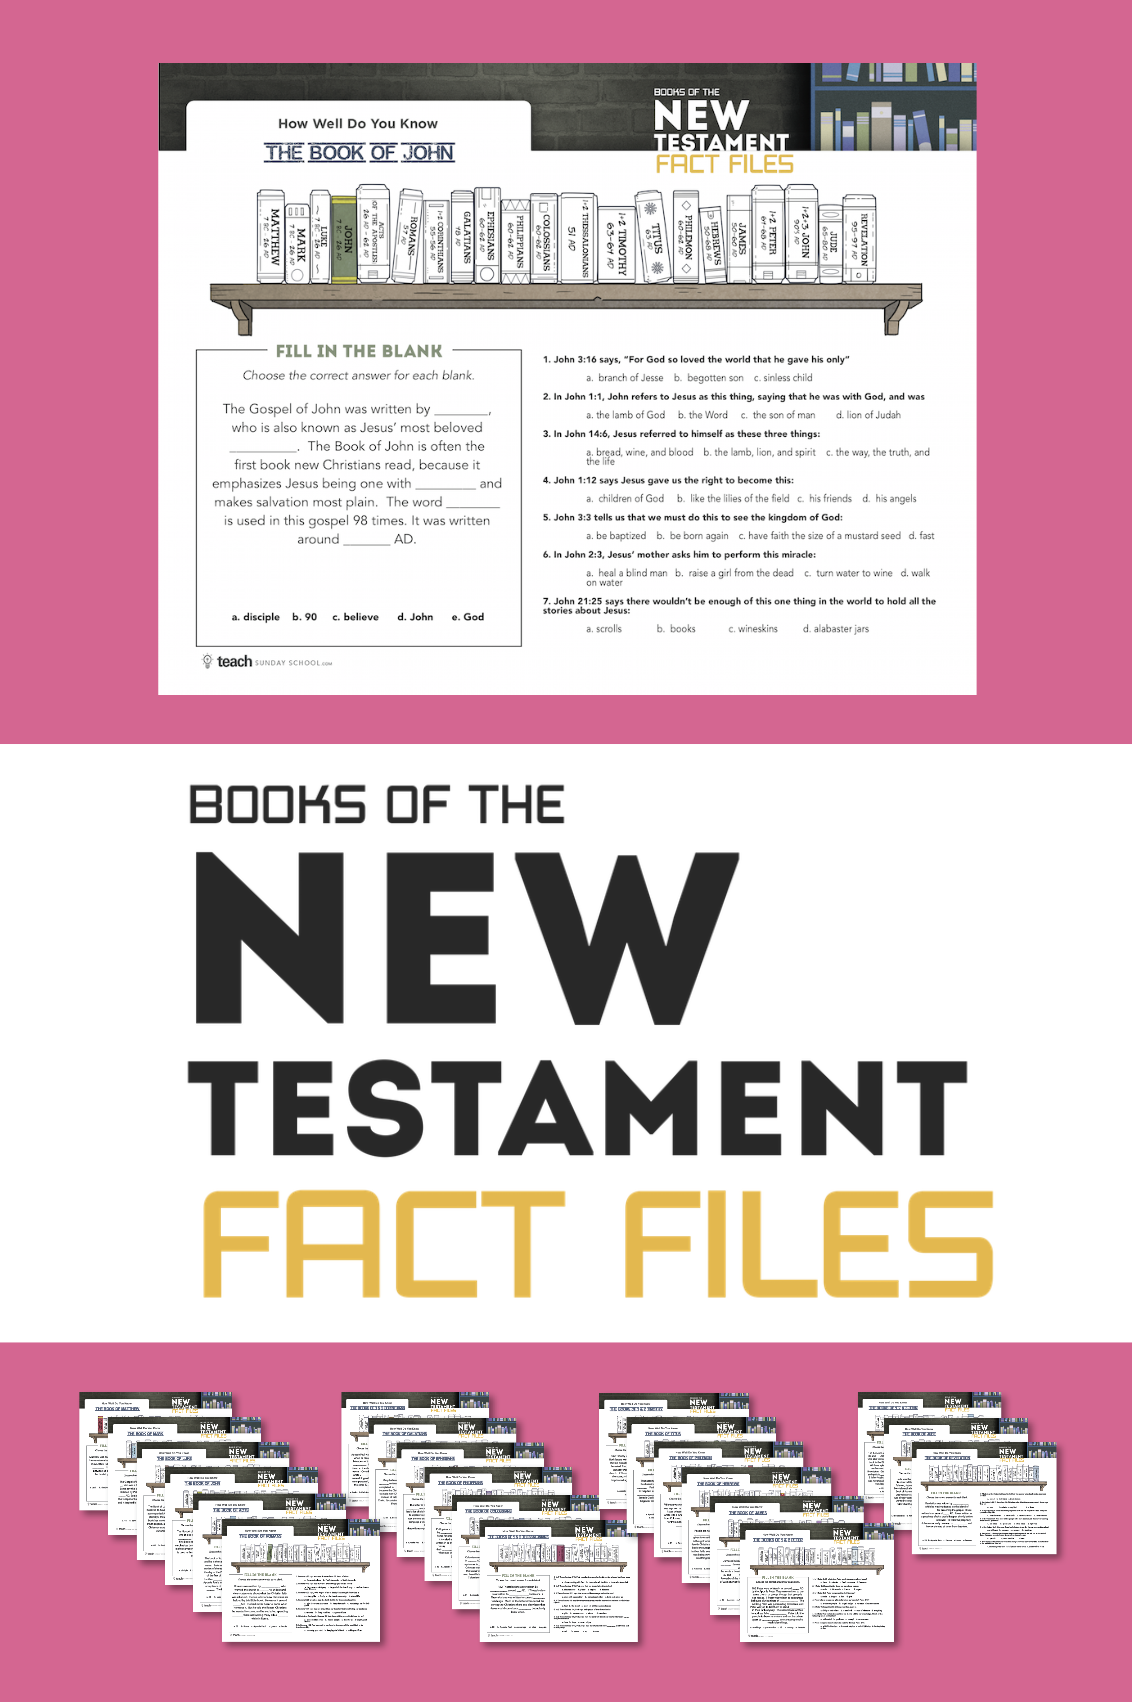 Books Of The New Testament Fact Files In